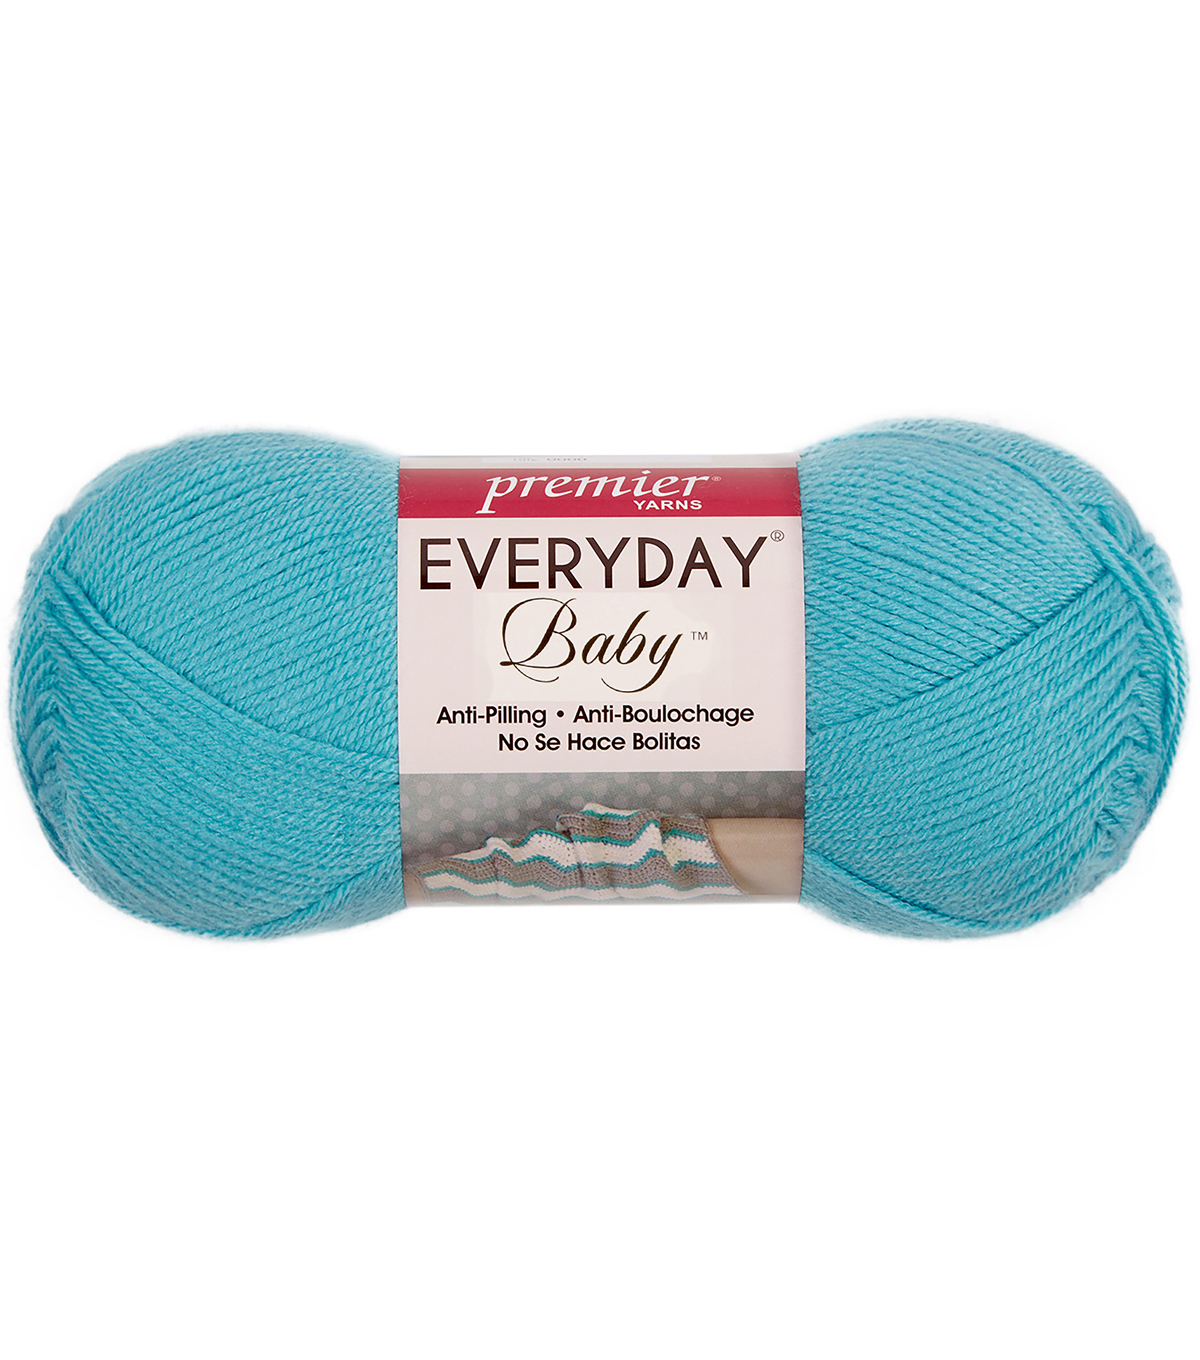 Premier Yarns Everyday Baby Yarn, Turquoise